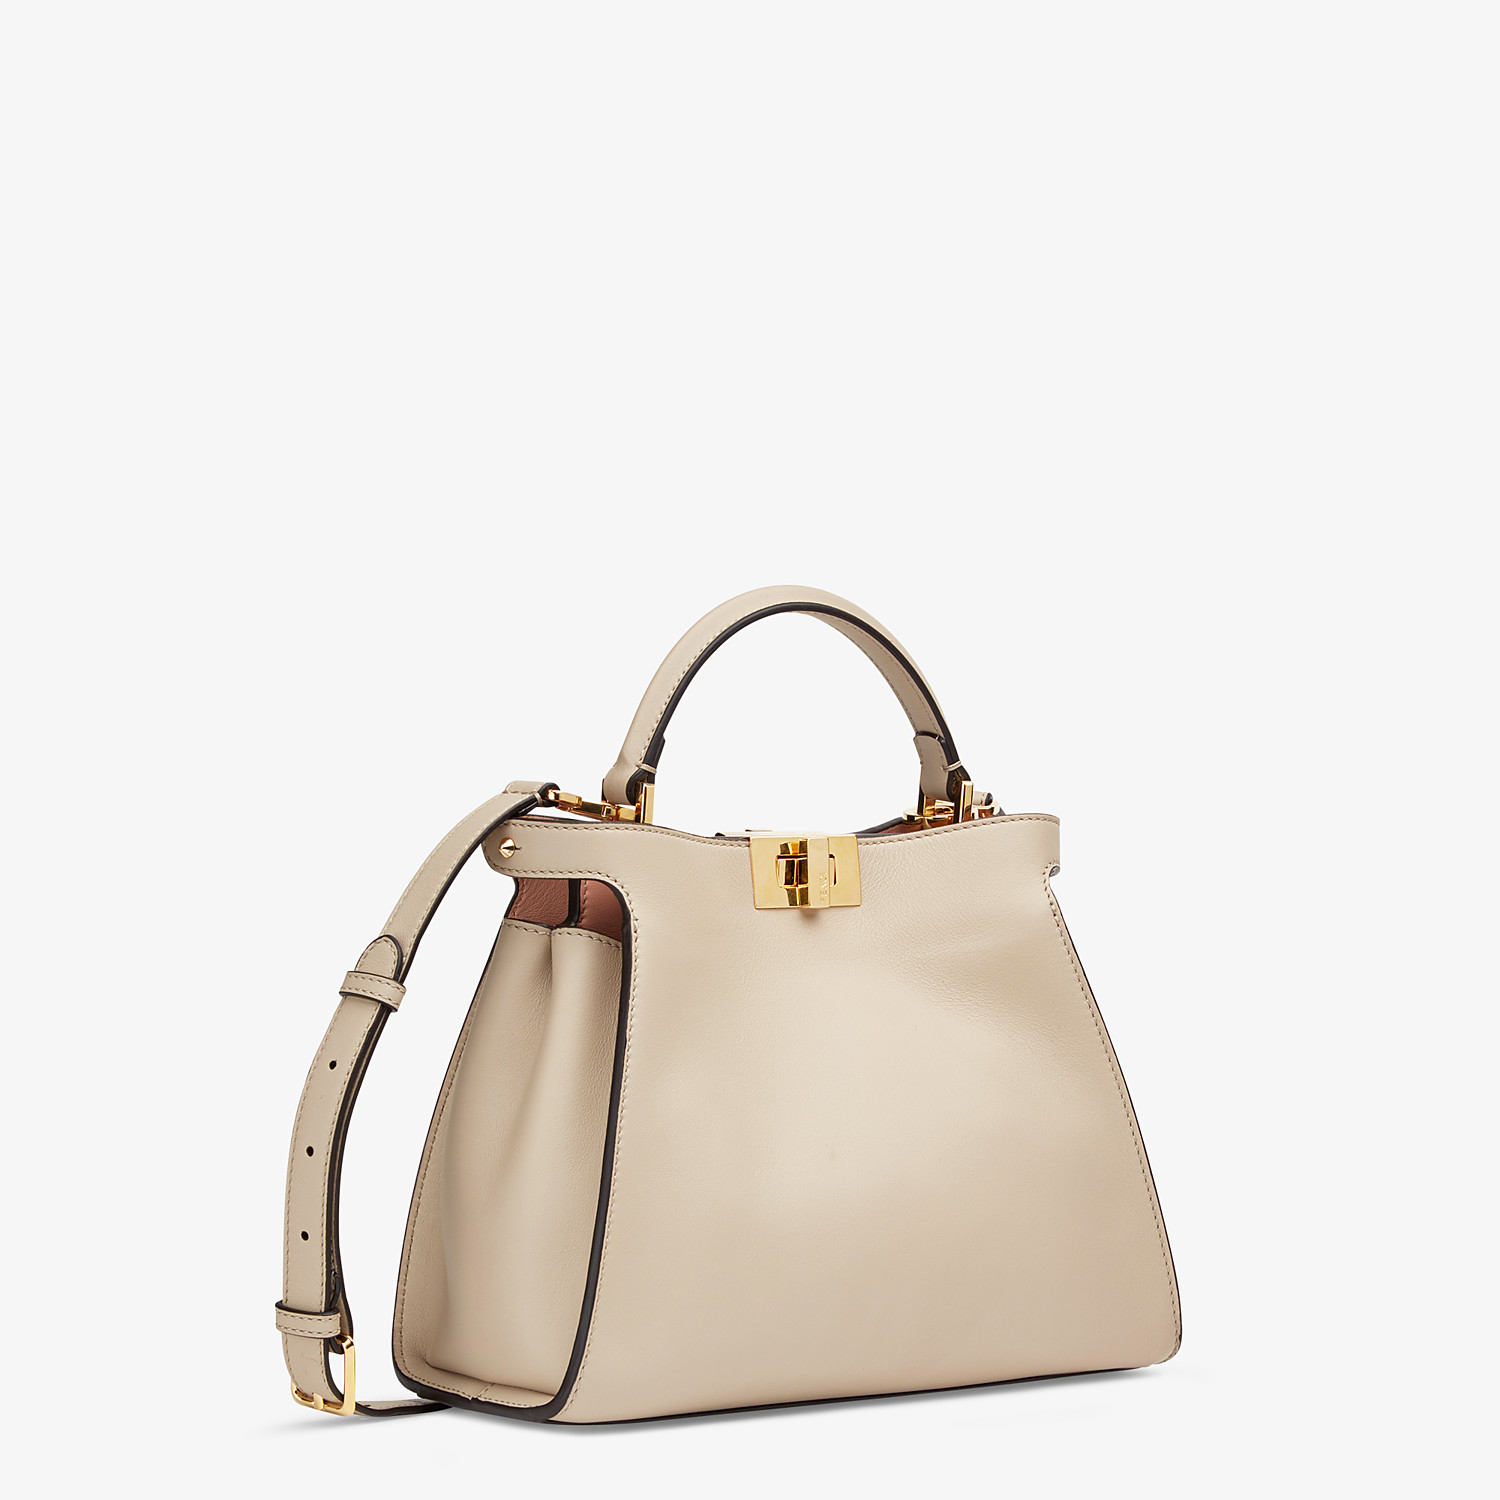 FENDI PEEKABOO ICONIC ESSENTIALLY - Tasche aus Leder in Beige - view 2 detail